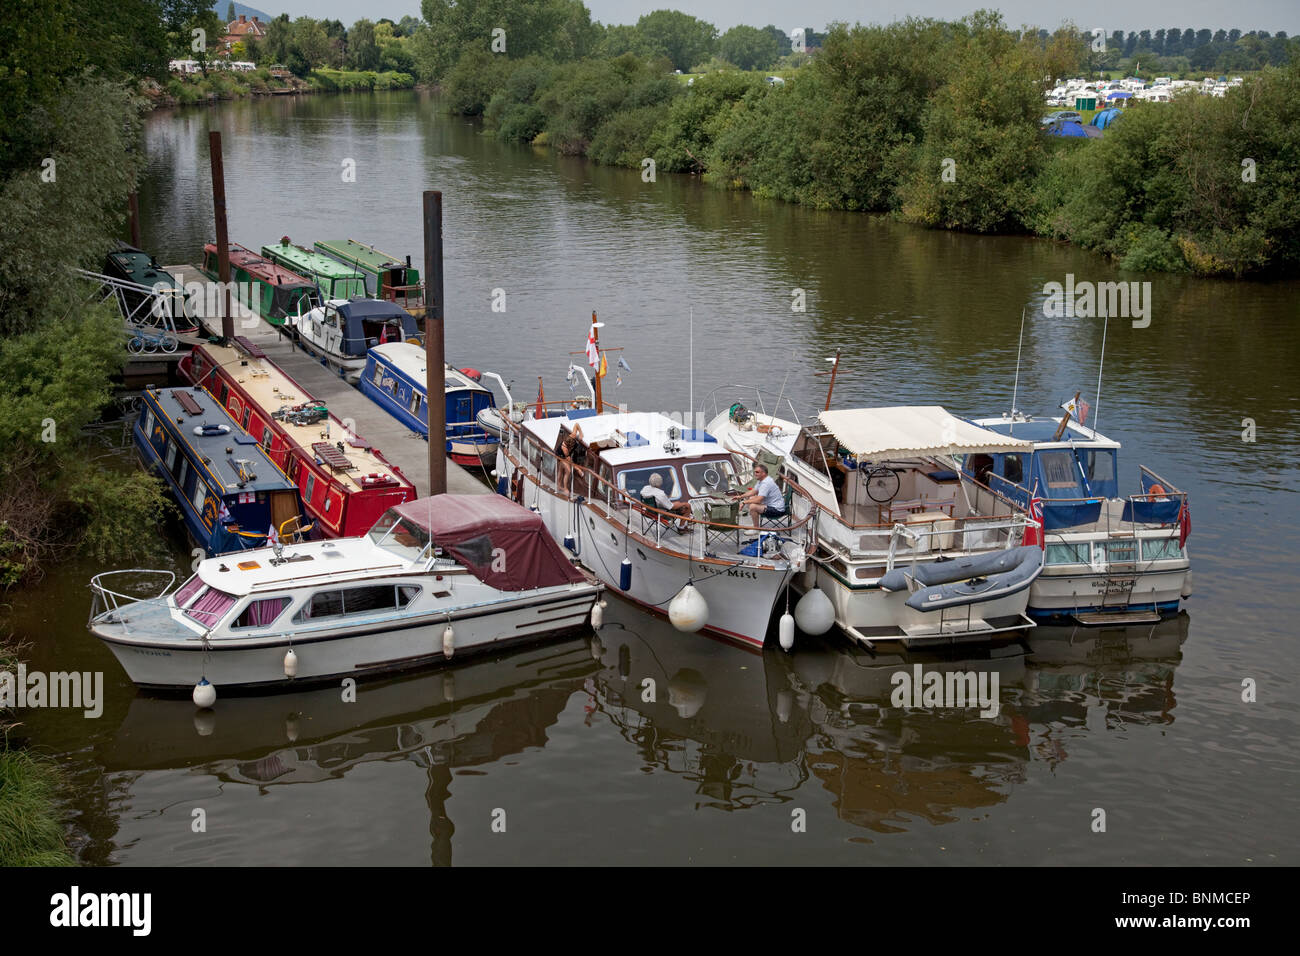 Motor launches and houseboats moored on River Severn Upton upon Severn UK - Stock Image